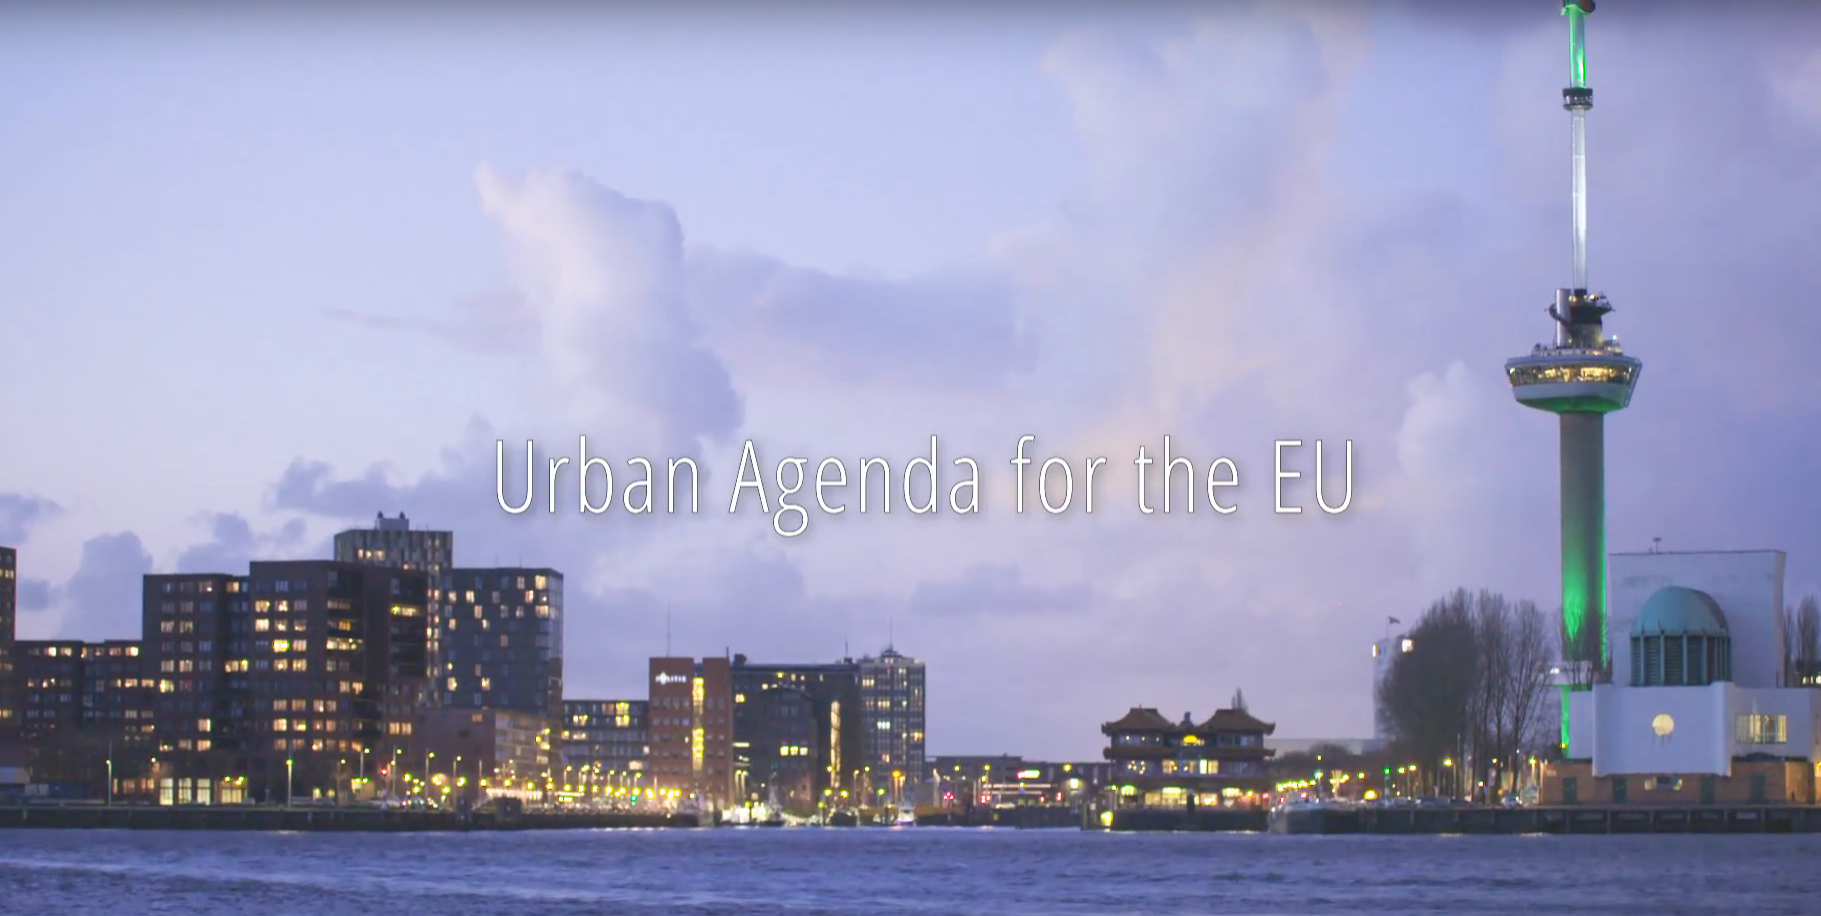 Presenting the Urban Agenda for the EU